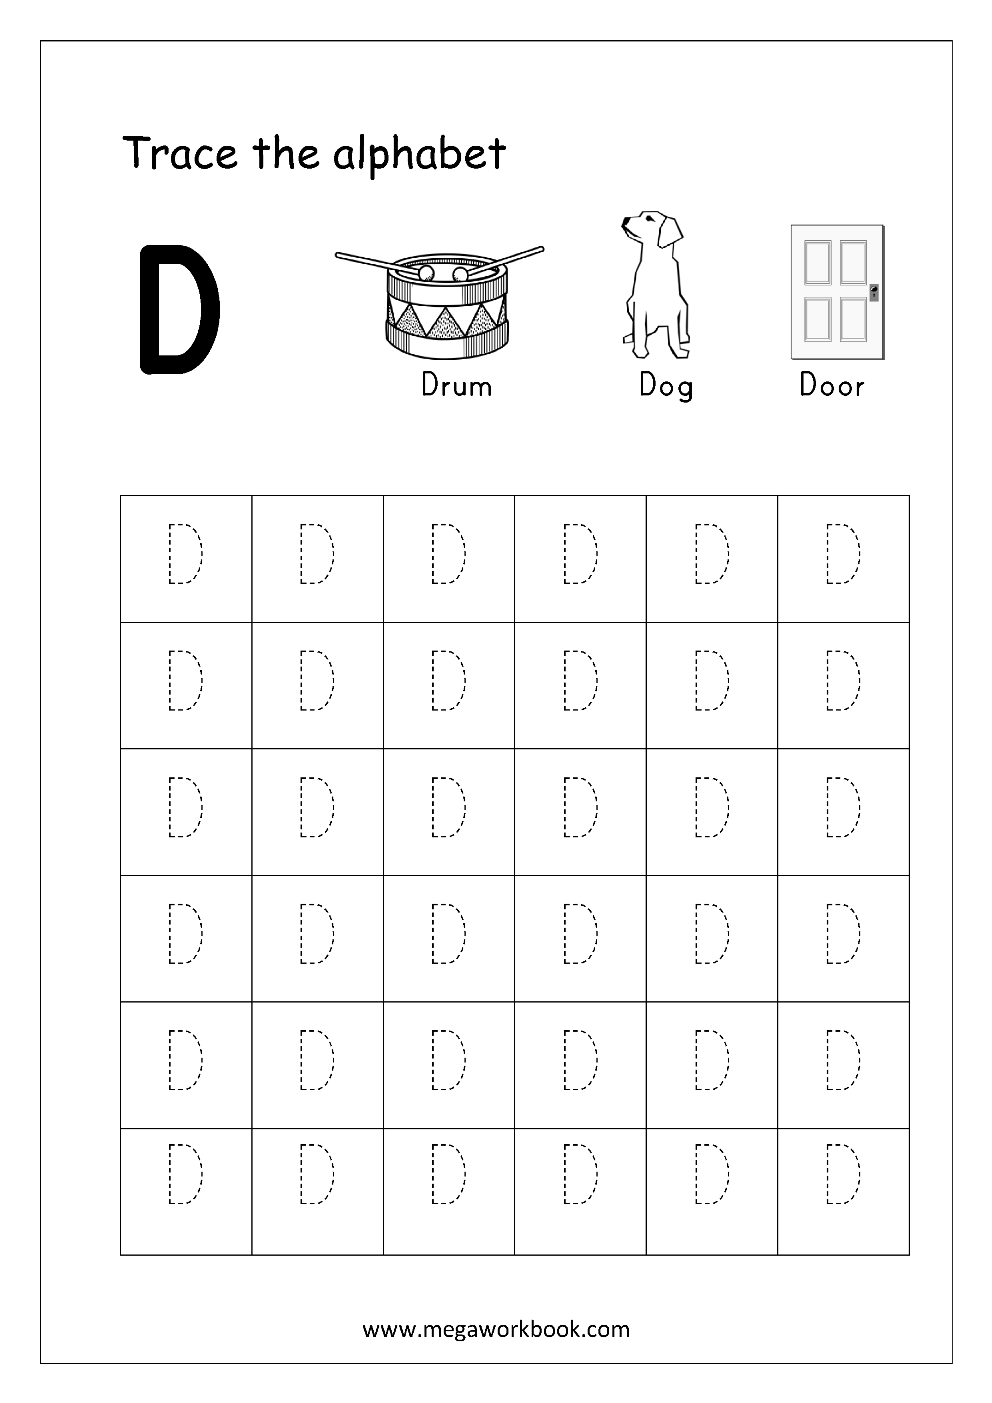 Capital Letter Tracing - Write in a Box and 4-lined Sheet